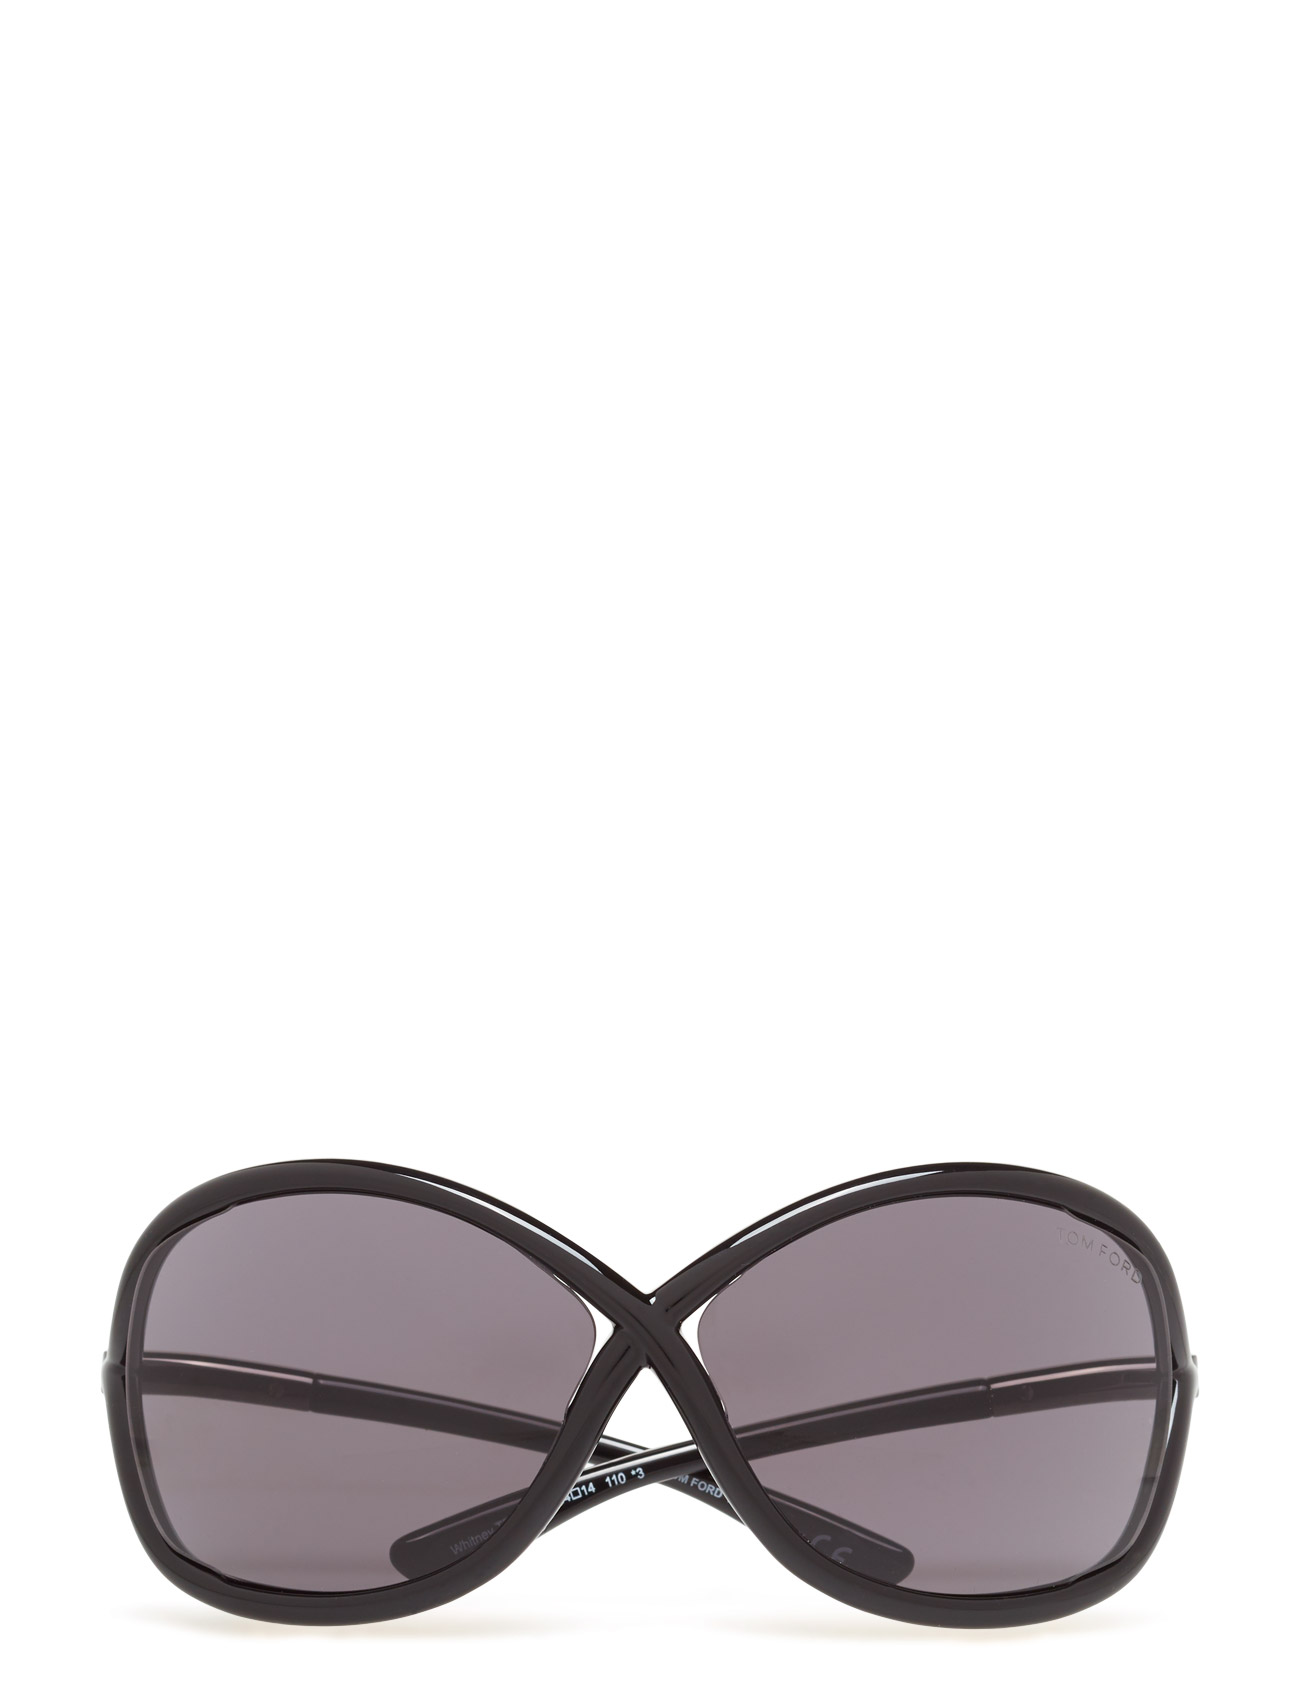 Tom Ford Whitney Tom Ford Sunglasses Solbriller til Kvinder i